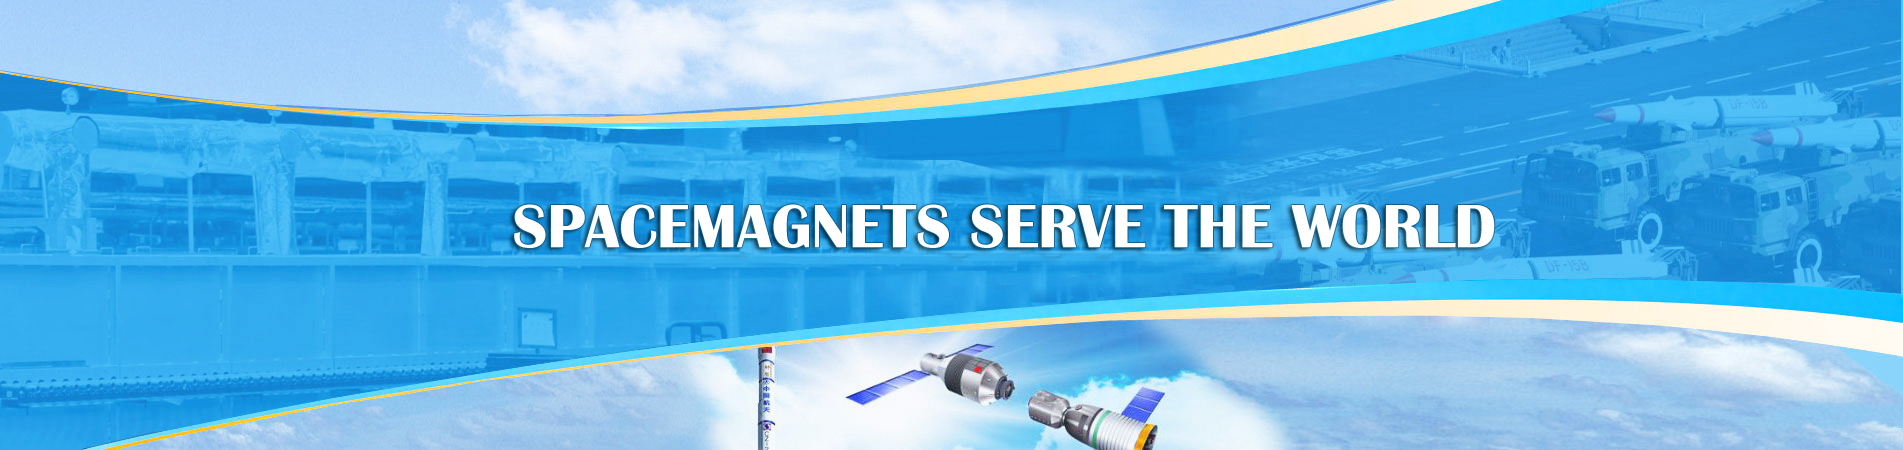 Spacemagnets-serve-the-world.jpg